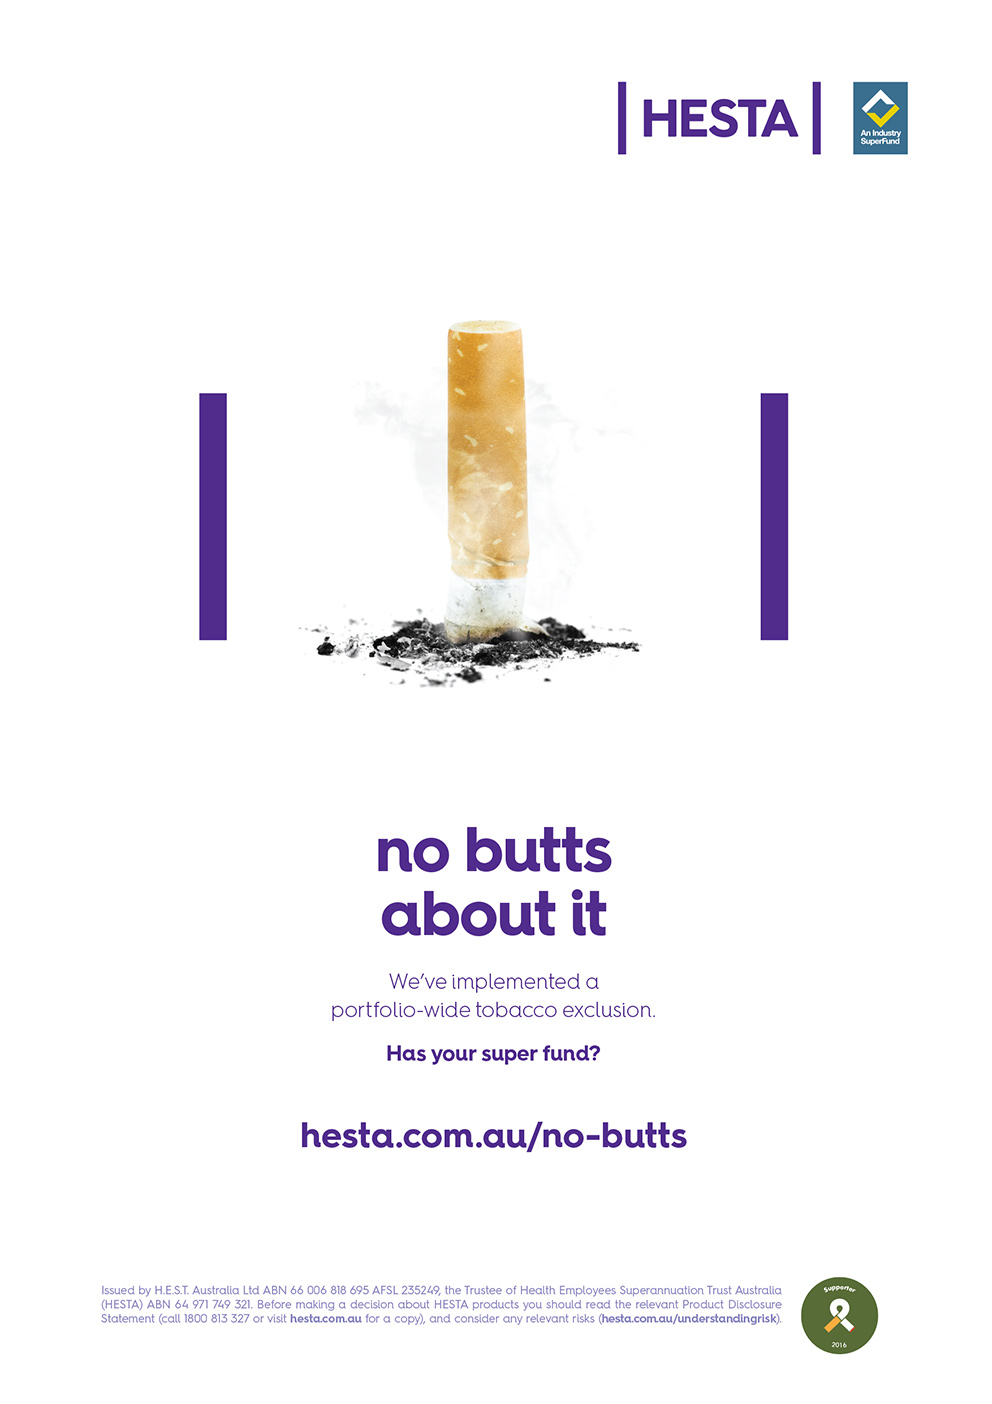 no butts about it We've implemented a portfolio-wide tobacco exclusion. Has your super fund?